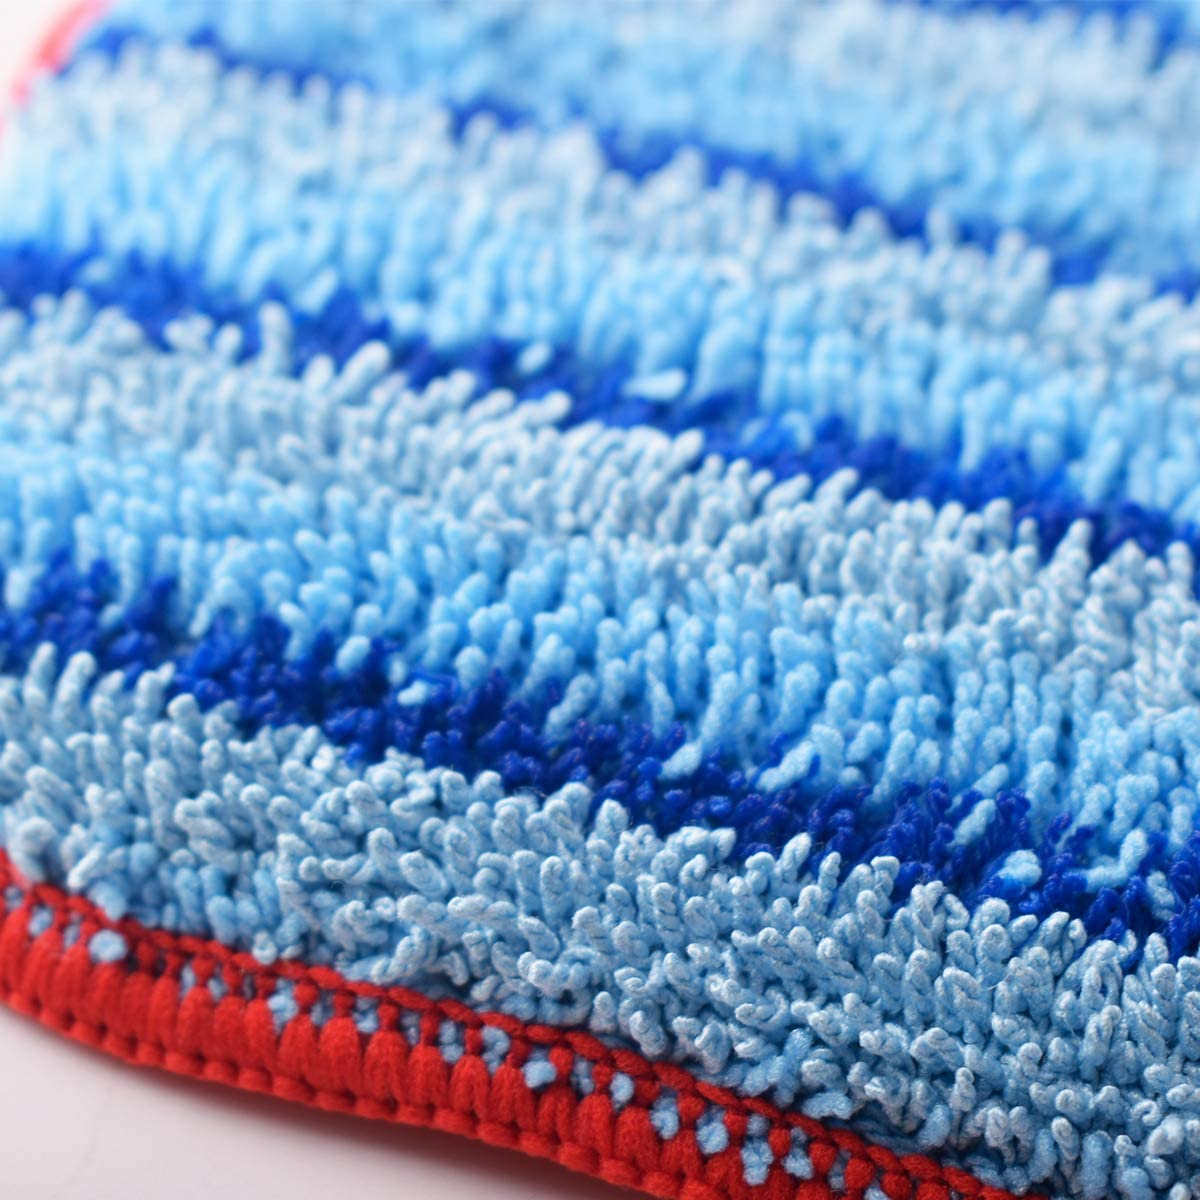 Tomkity 4 Pack A1375-100 and A1375-101 Microfiber Steam Mop Pad Replacement for McCulloch MC1375 MC1385 Include 2 Pack Soft Mop Pad and 2 Pack Scrubbing Mop Pad